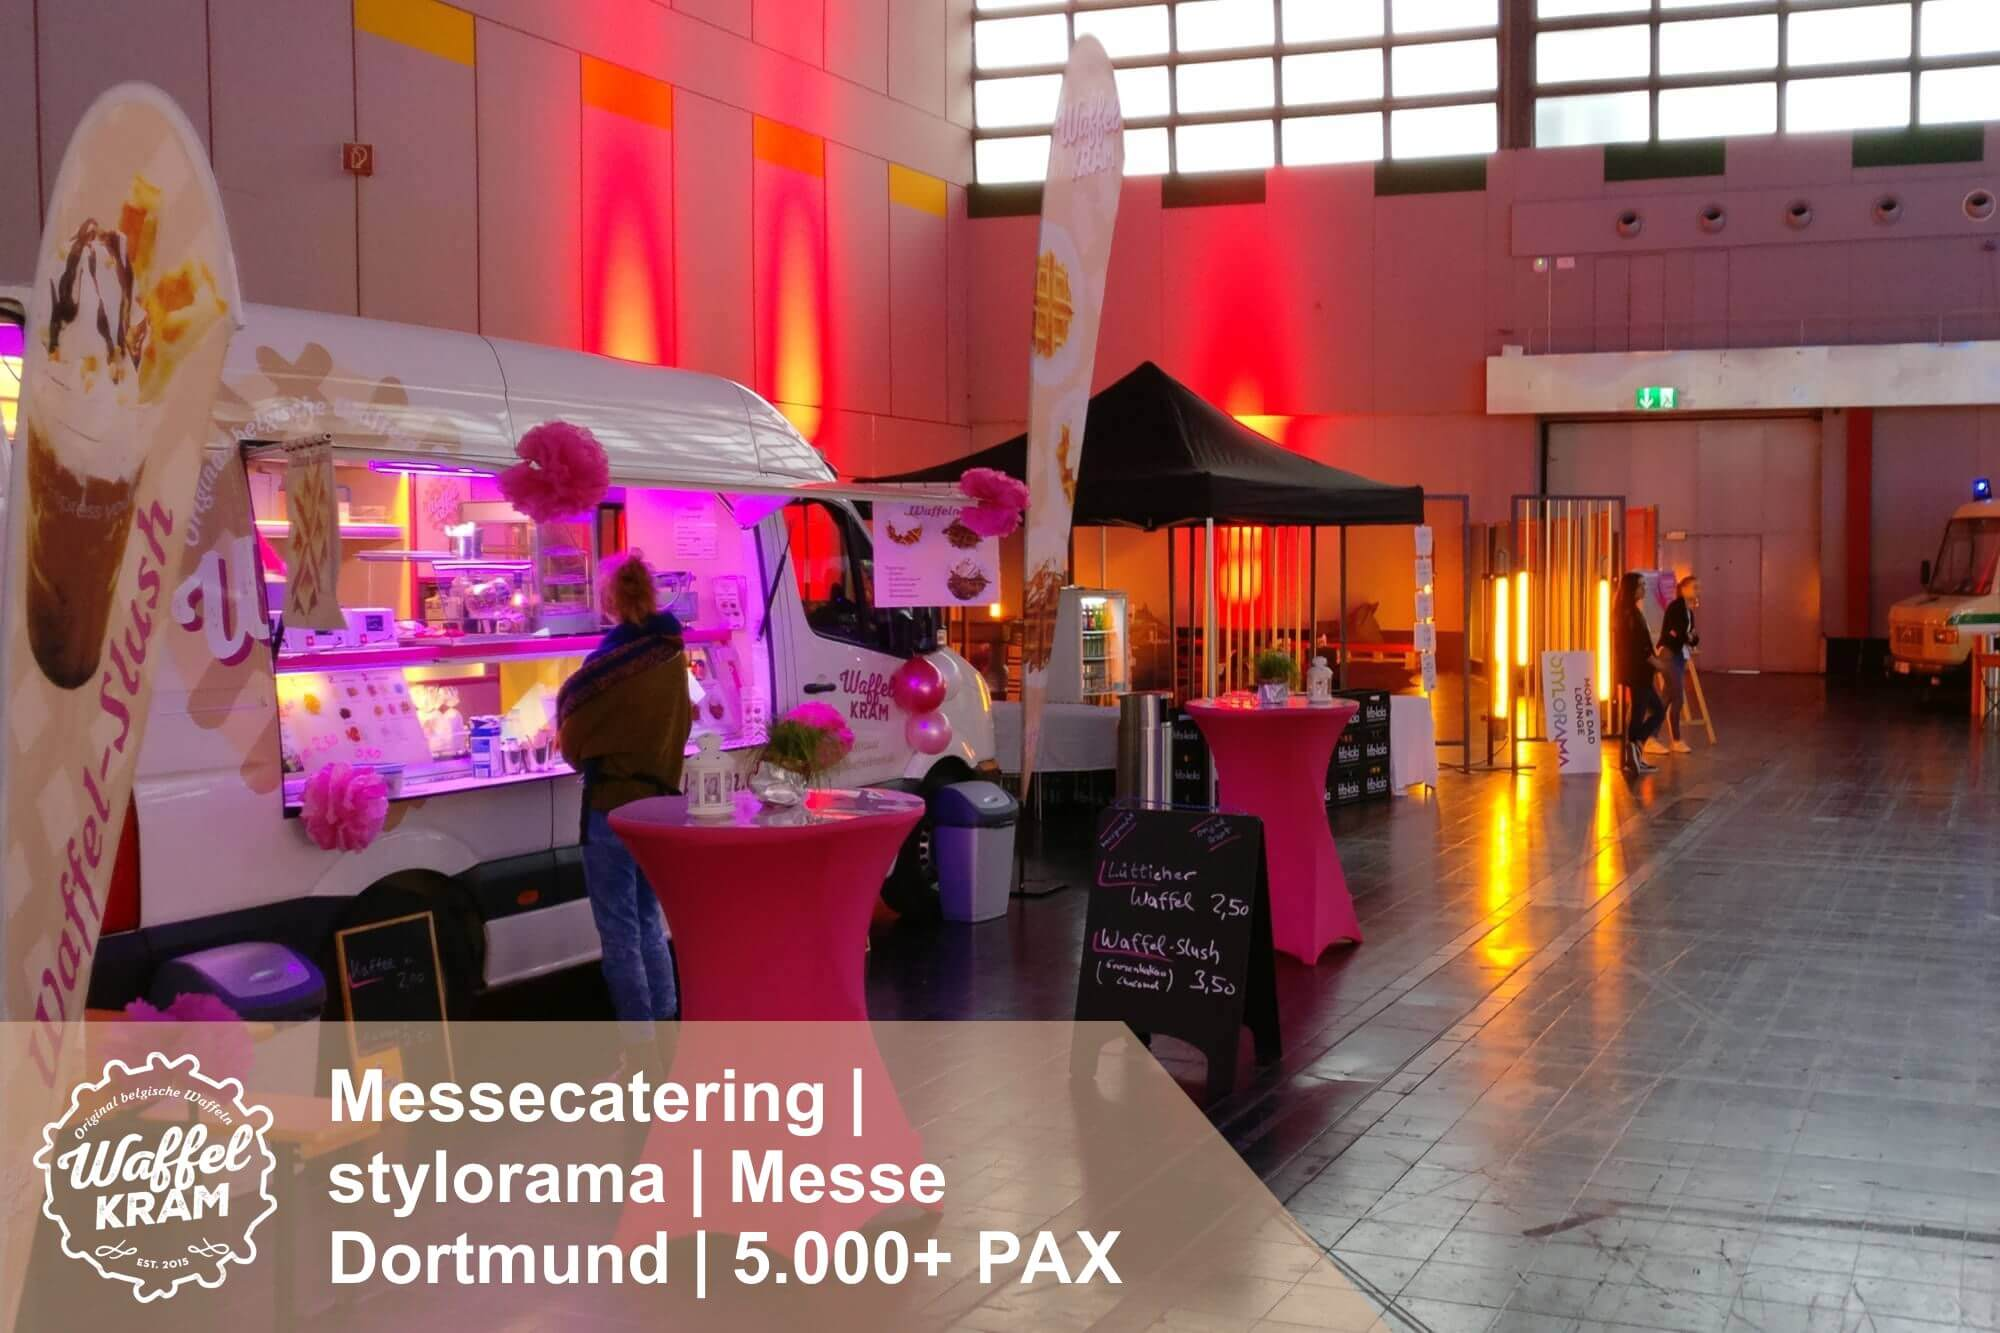 messecatering-indoor-stylorama-messe-dortmund-tx